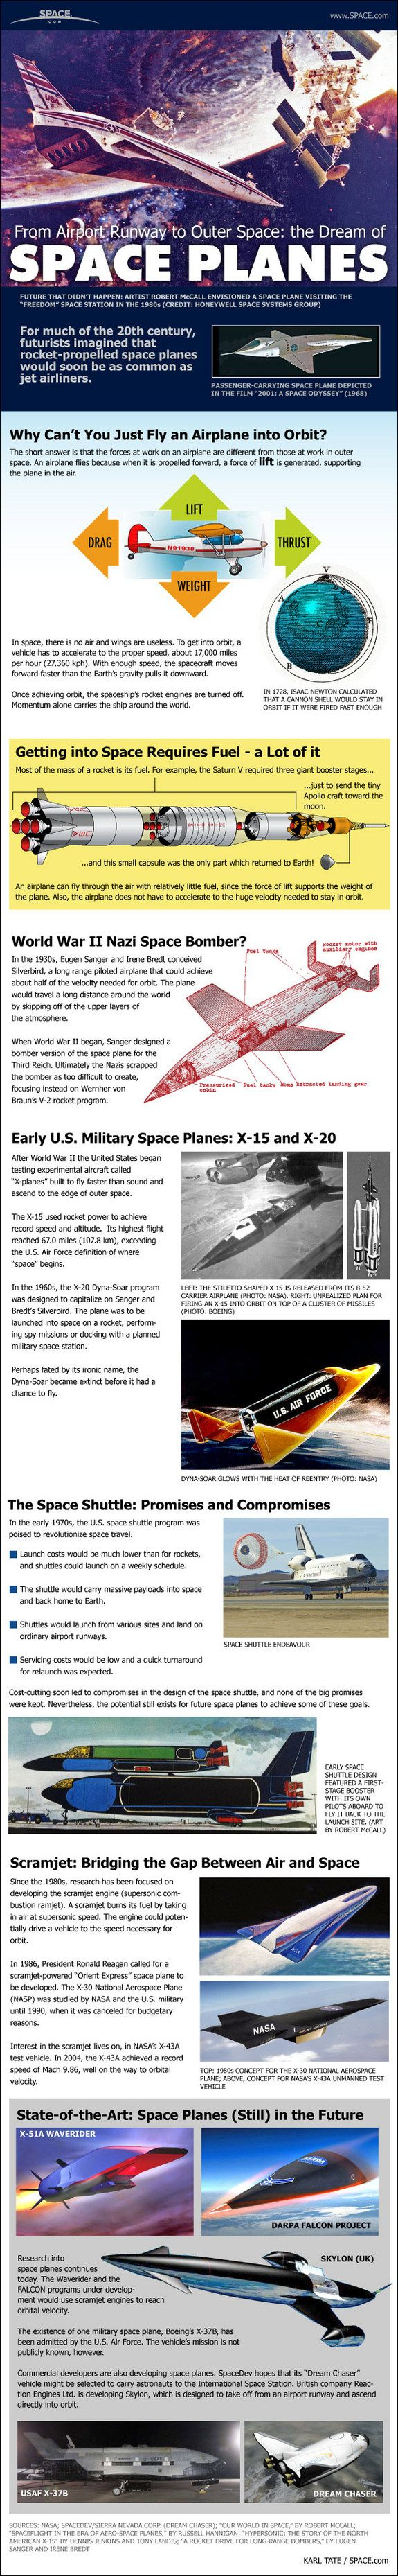 Space Planes: Evolution of the Winged Spaceship (Infographic)  Karl Tate, SPACE.com Infographics Artist